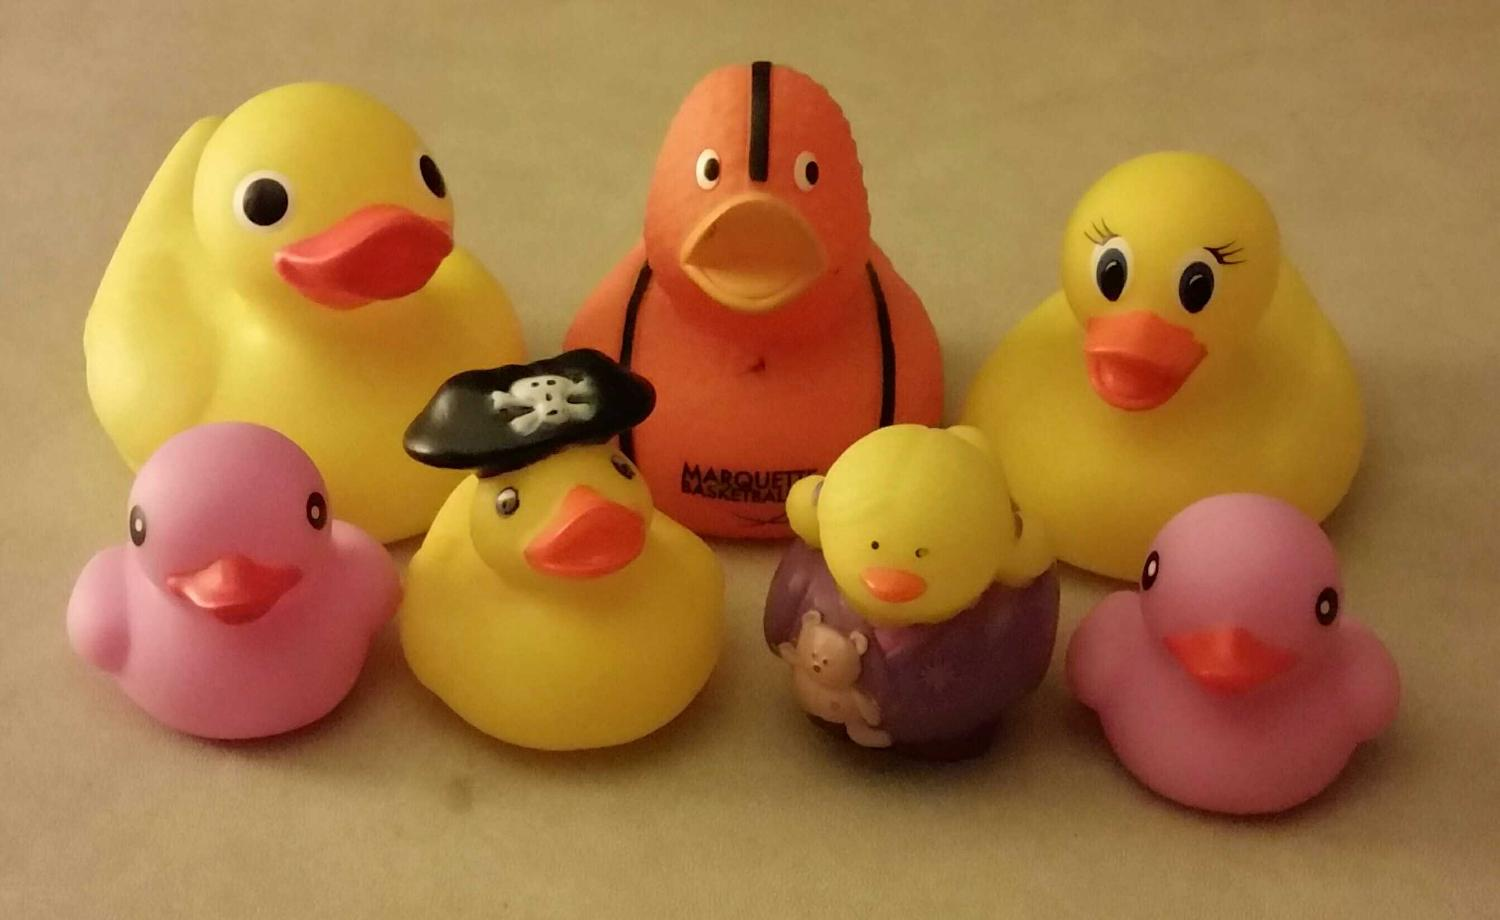 Find more Set Of 7 Rubber Ducks for sale at up to 90% off